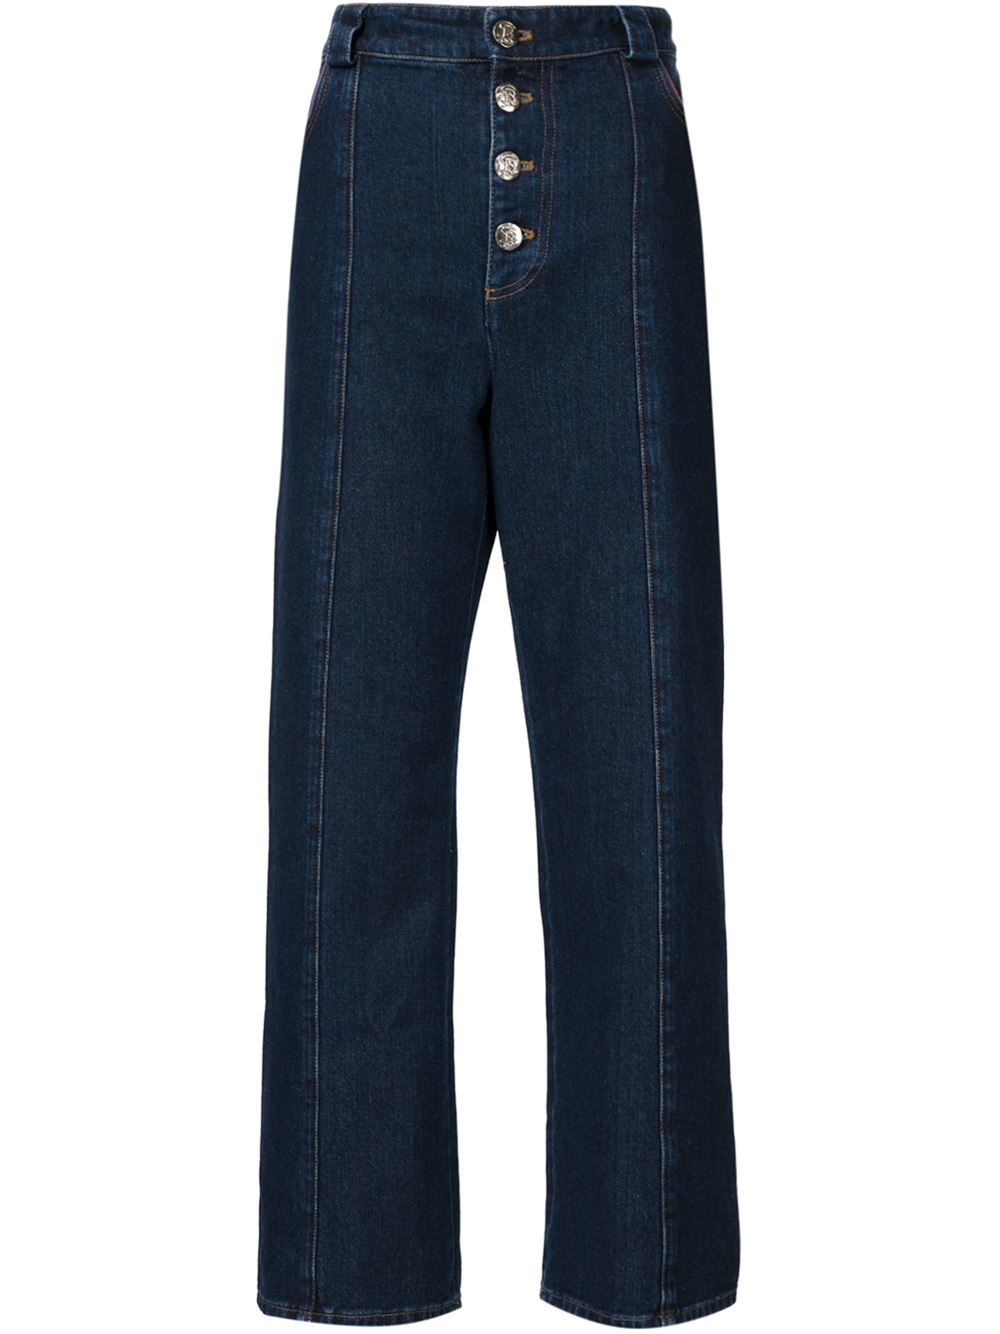 Sonia rykiel High-waisted Jeans in Blue | Lyst